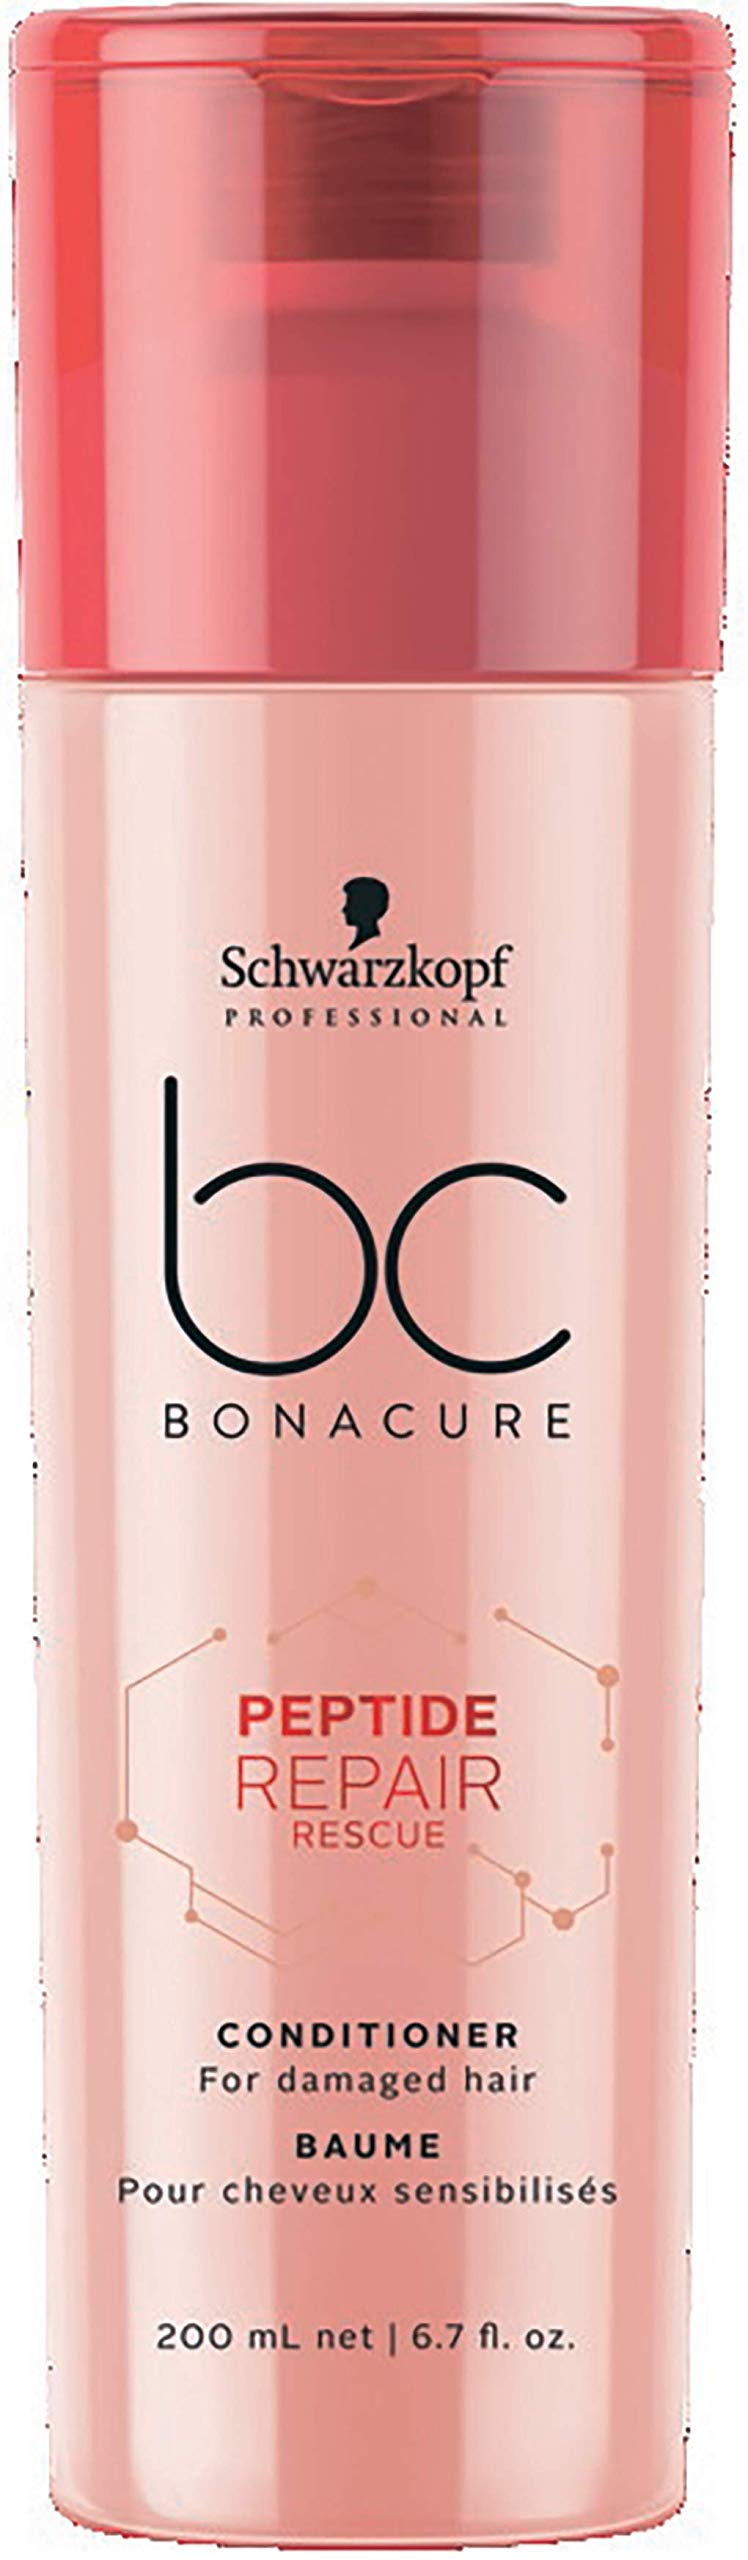 BC BONACURE Peptide Repair Rescue Conditioner, 6.7-Ounce